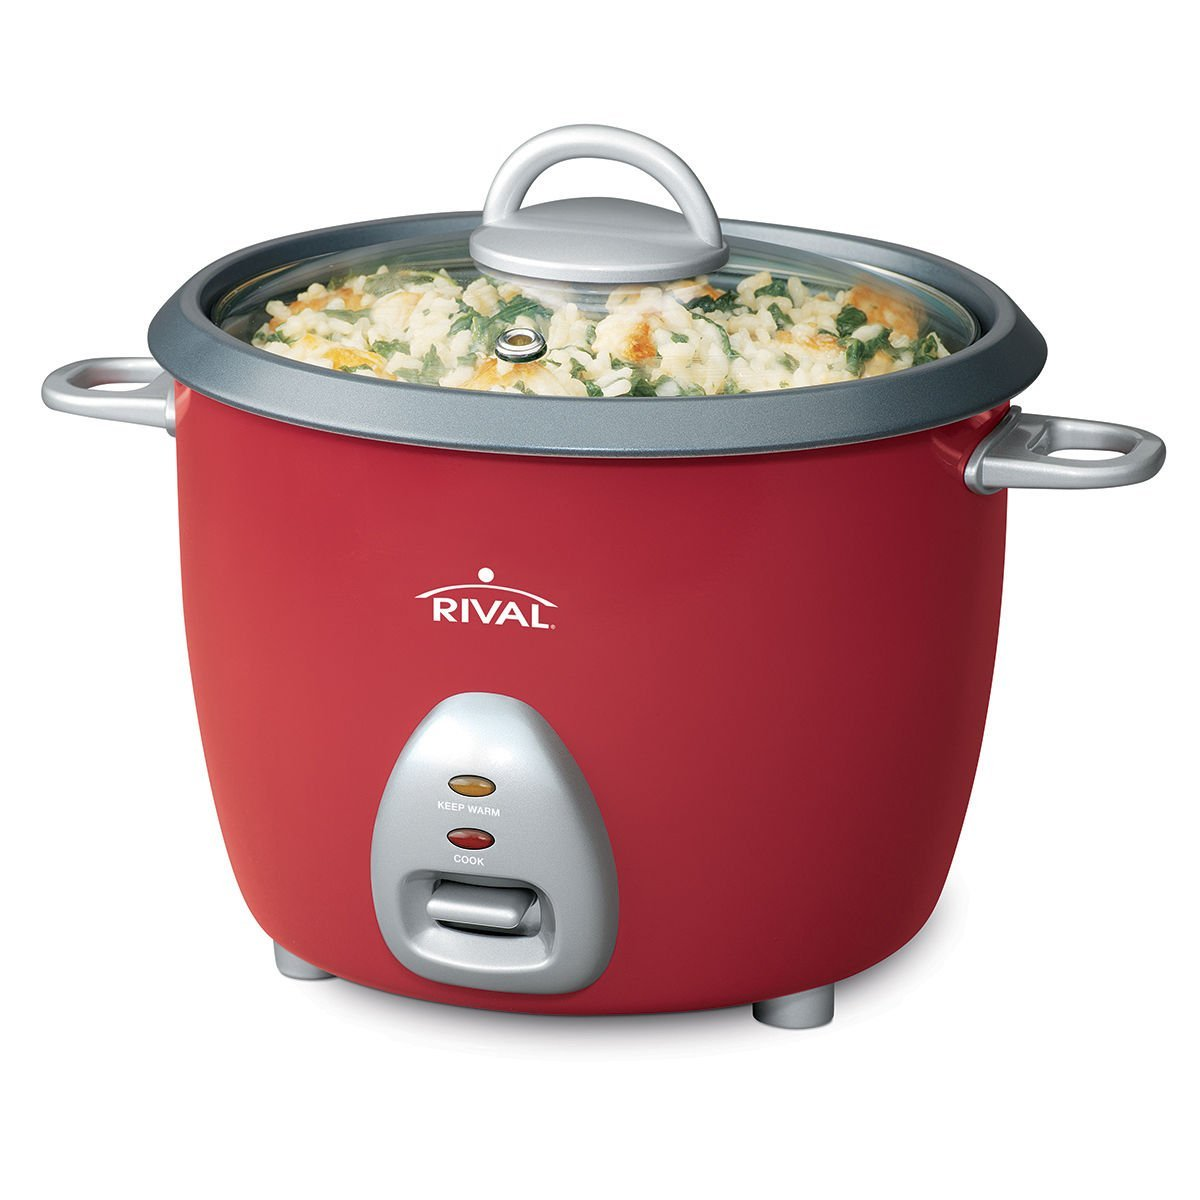 Rival RC61 6-Cup Rice Cooker, Red by Rival